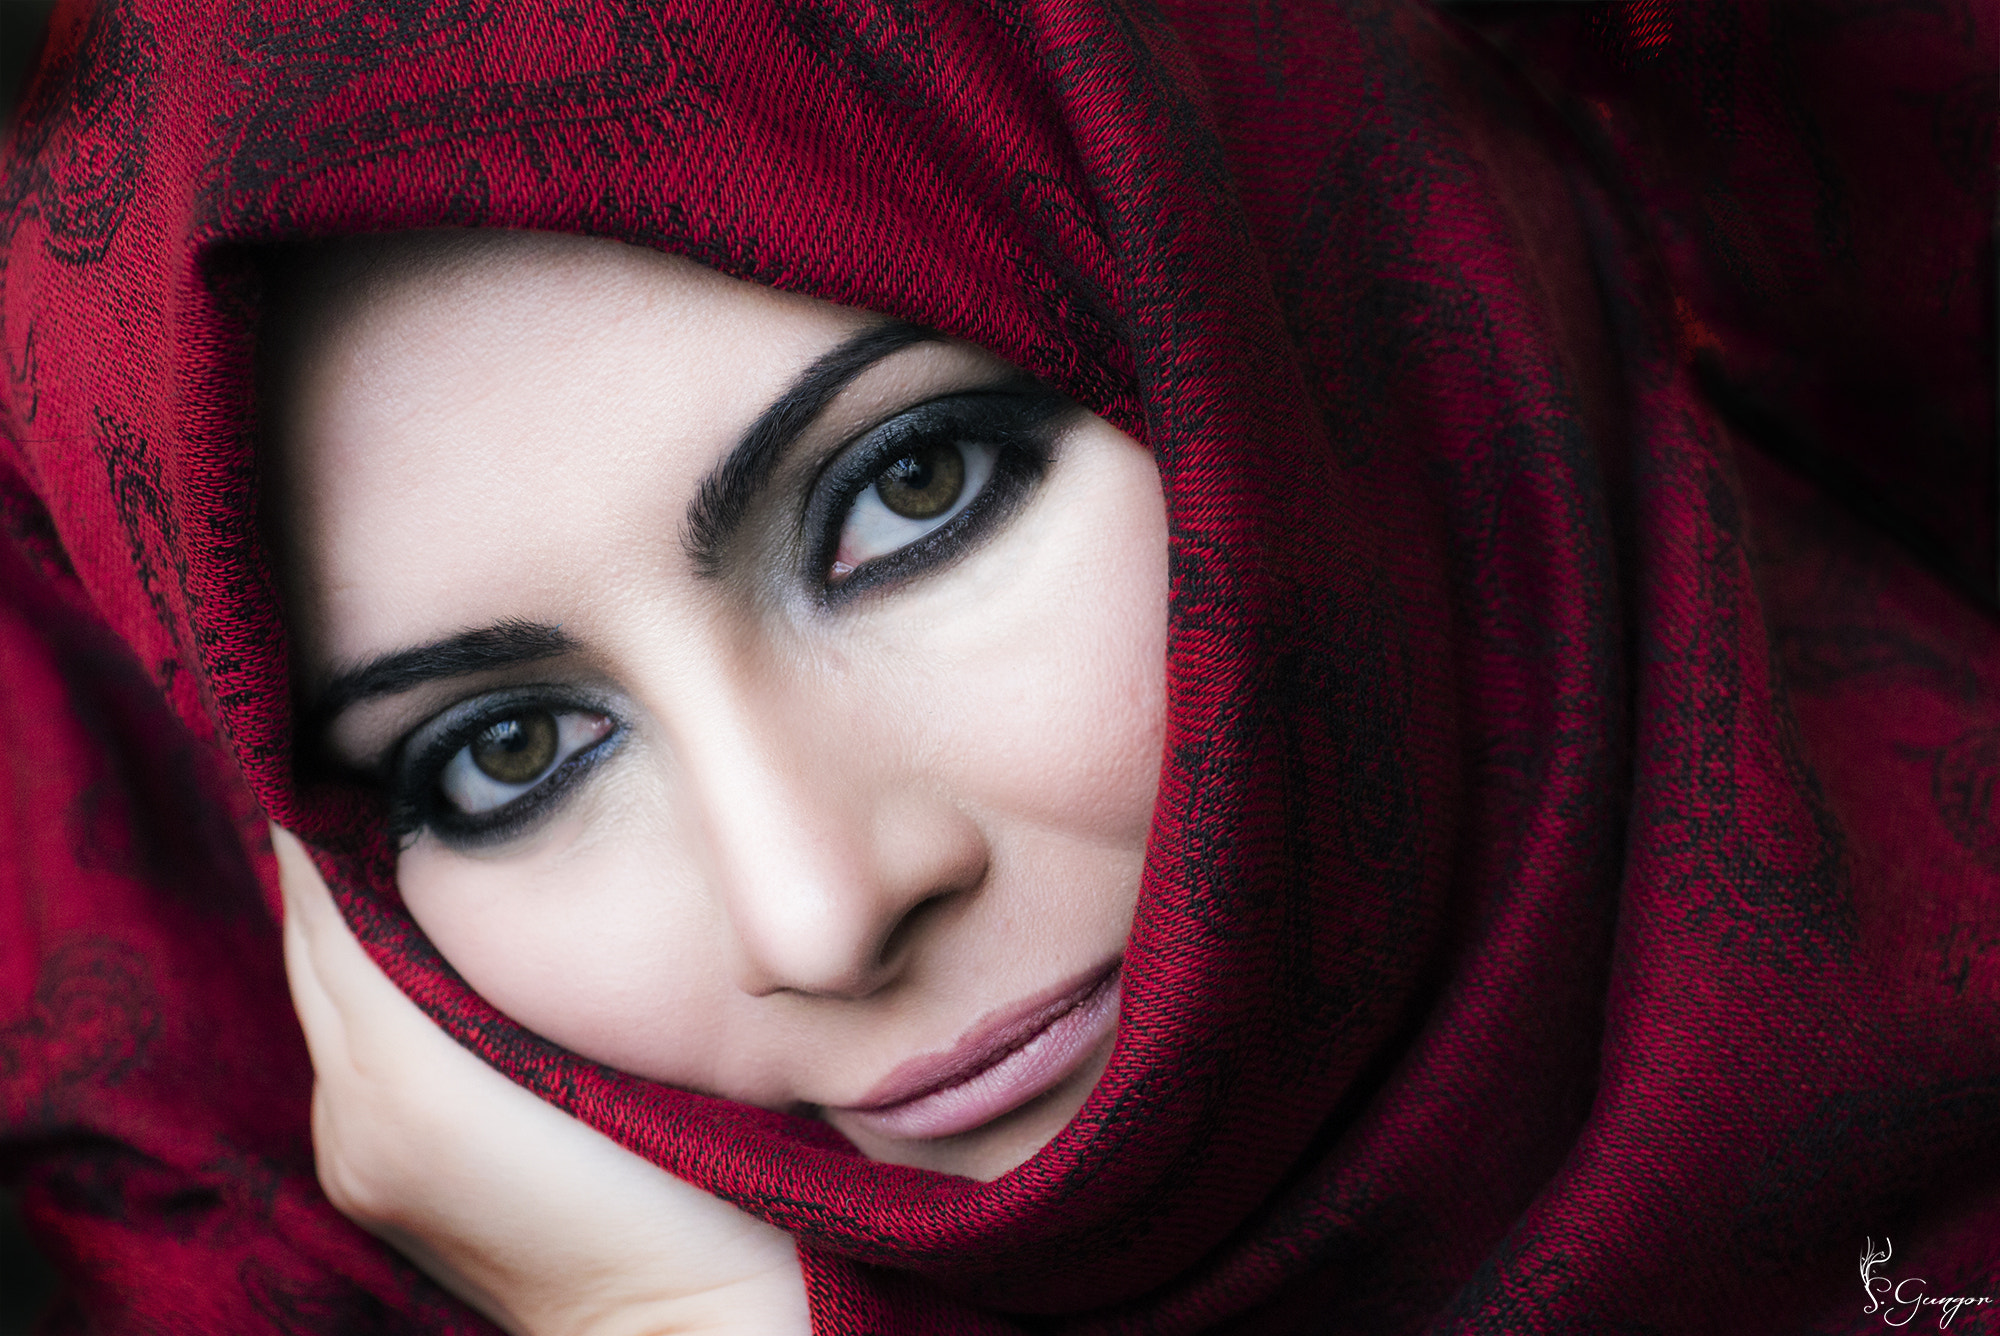 Photograph Red Scarf by Seyhan Gungor on 500px